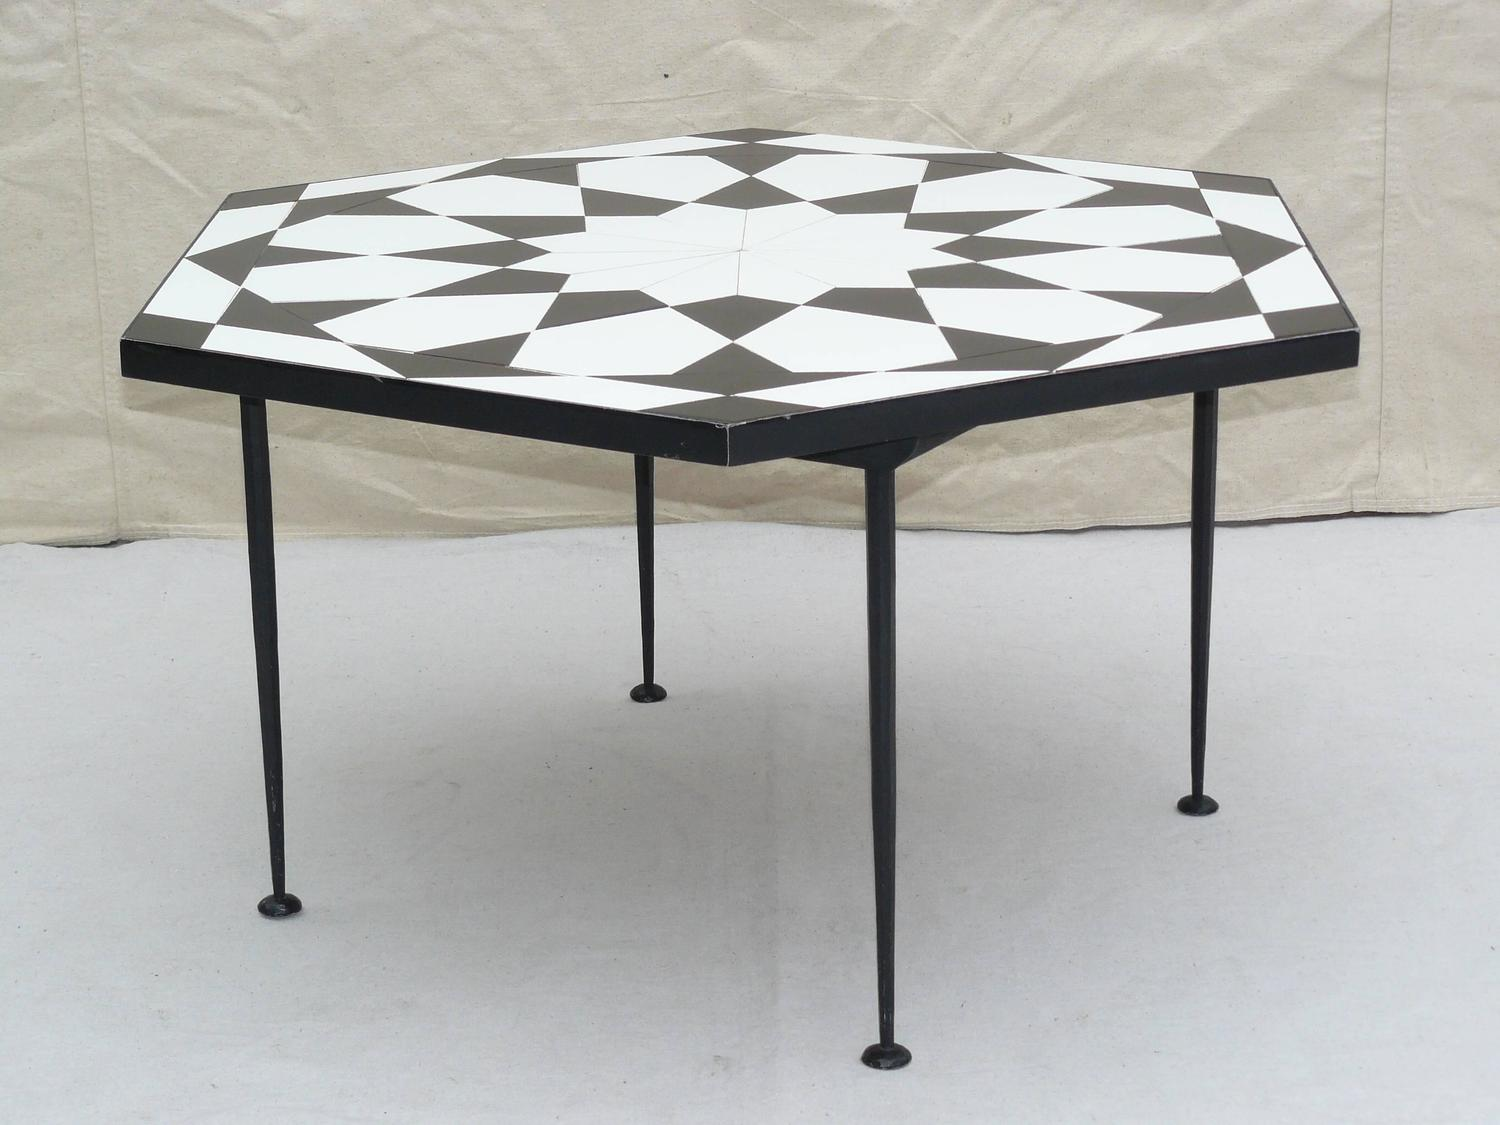 1960s Italian Mosaic Tile Top Op Art Coffee Table For Sale At 1stdibs